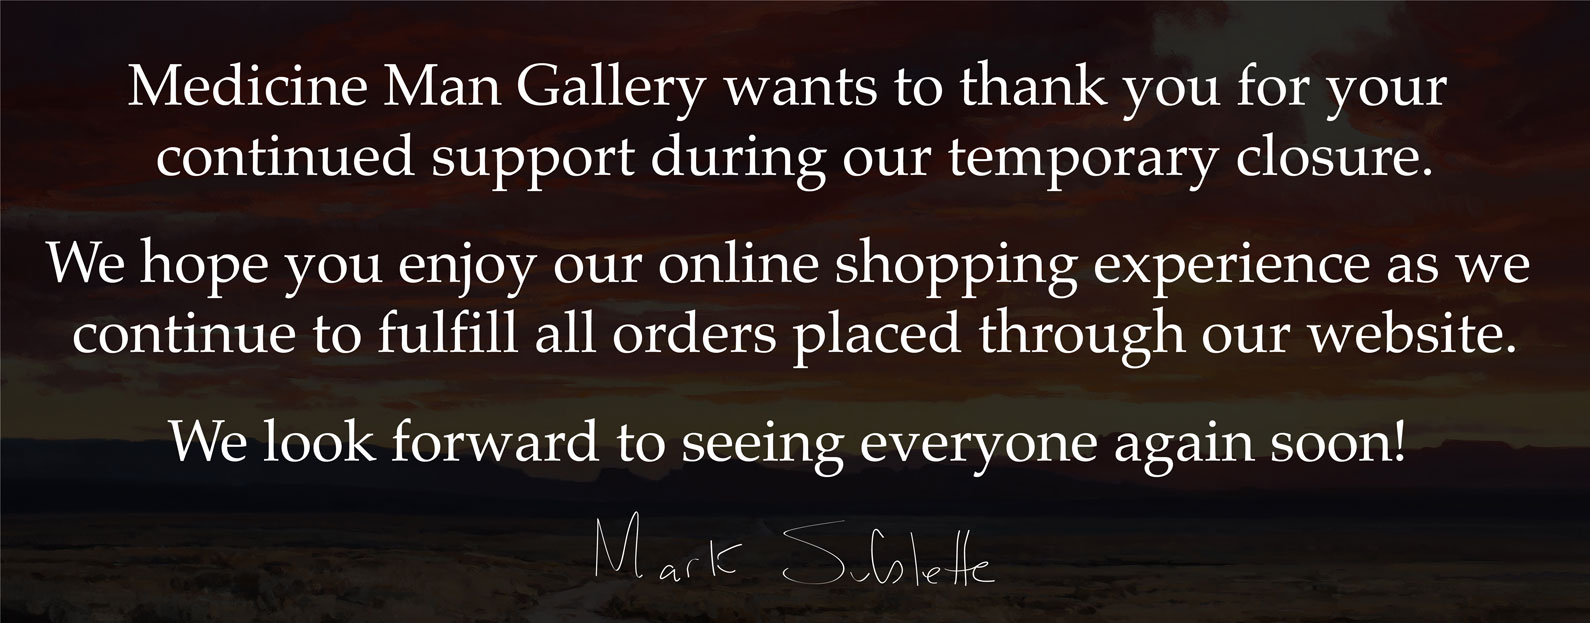 Medicine Man Gallery wants to thank you for your  continued support during our temporary closure.